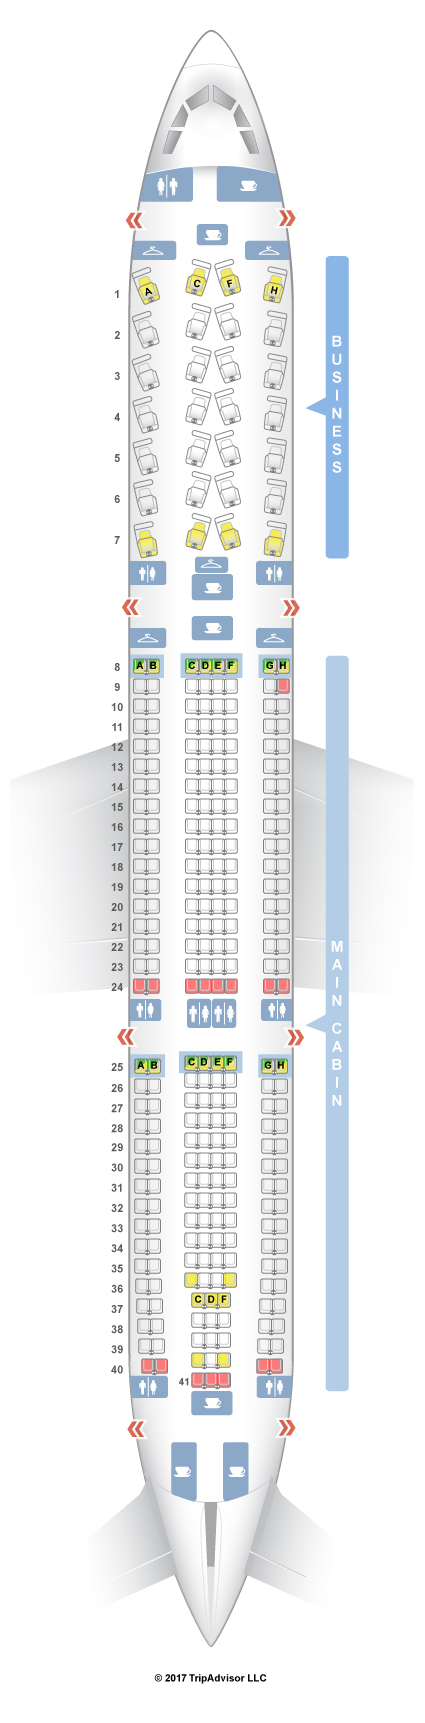 United airlines seating assignment